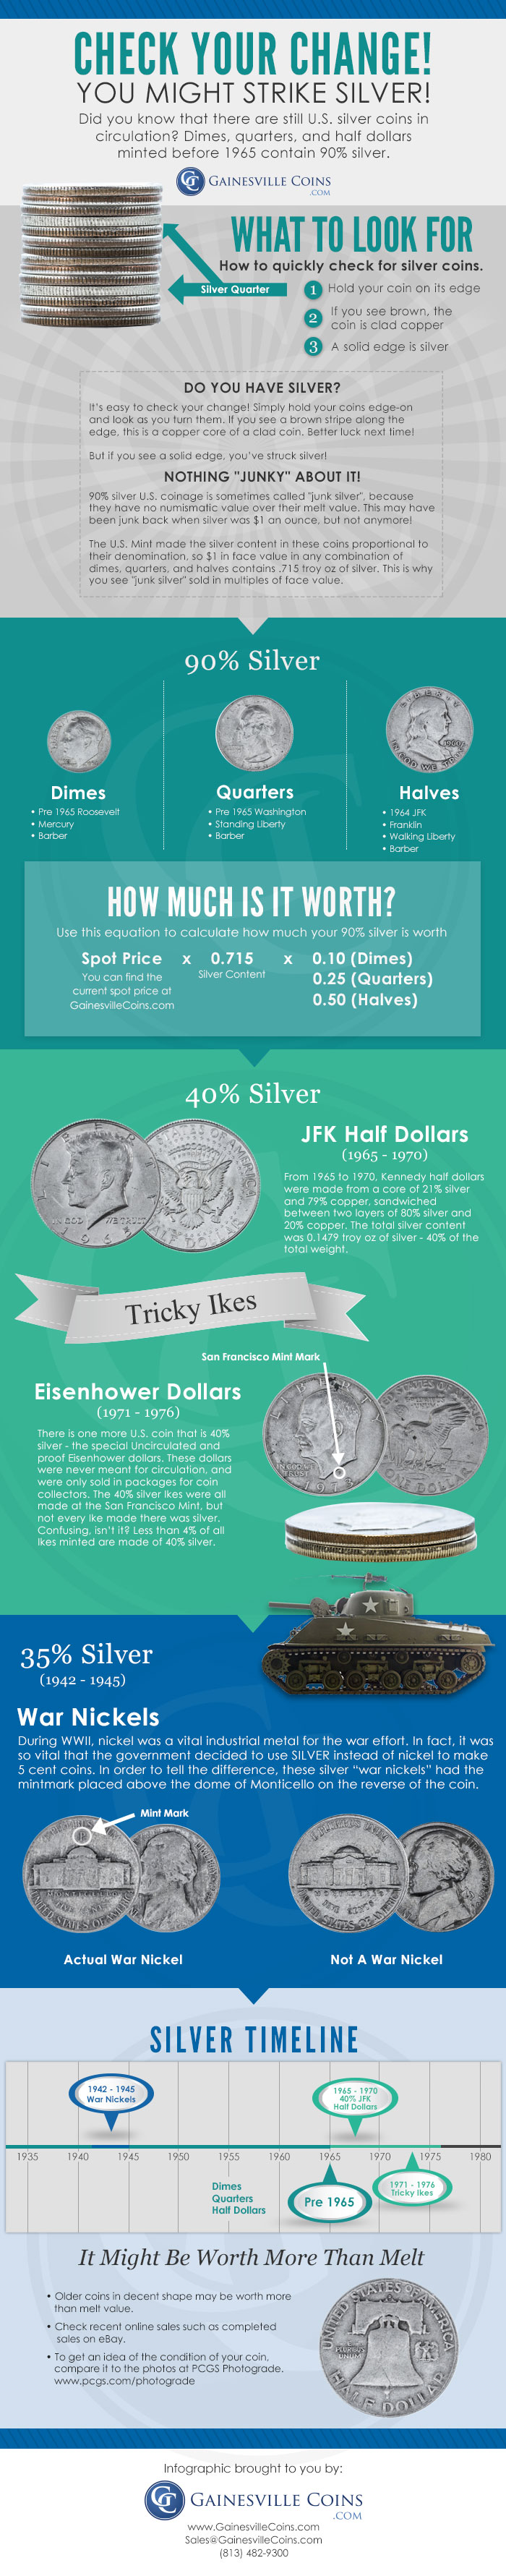 Check Your Change, You Might Strike Silver